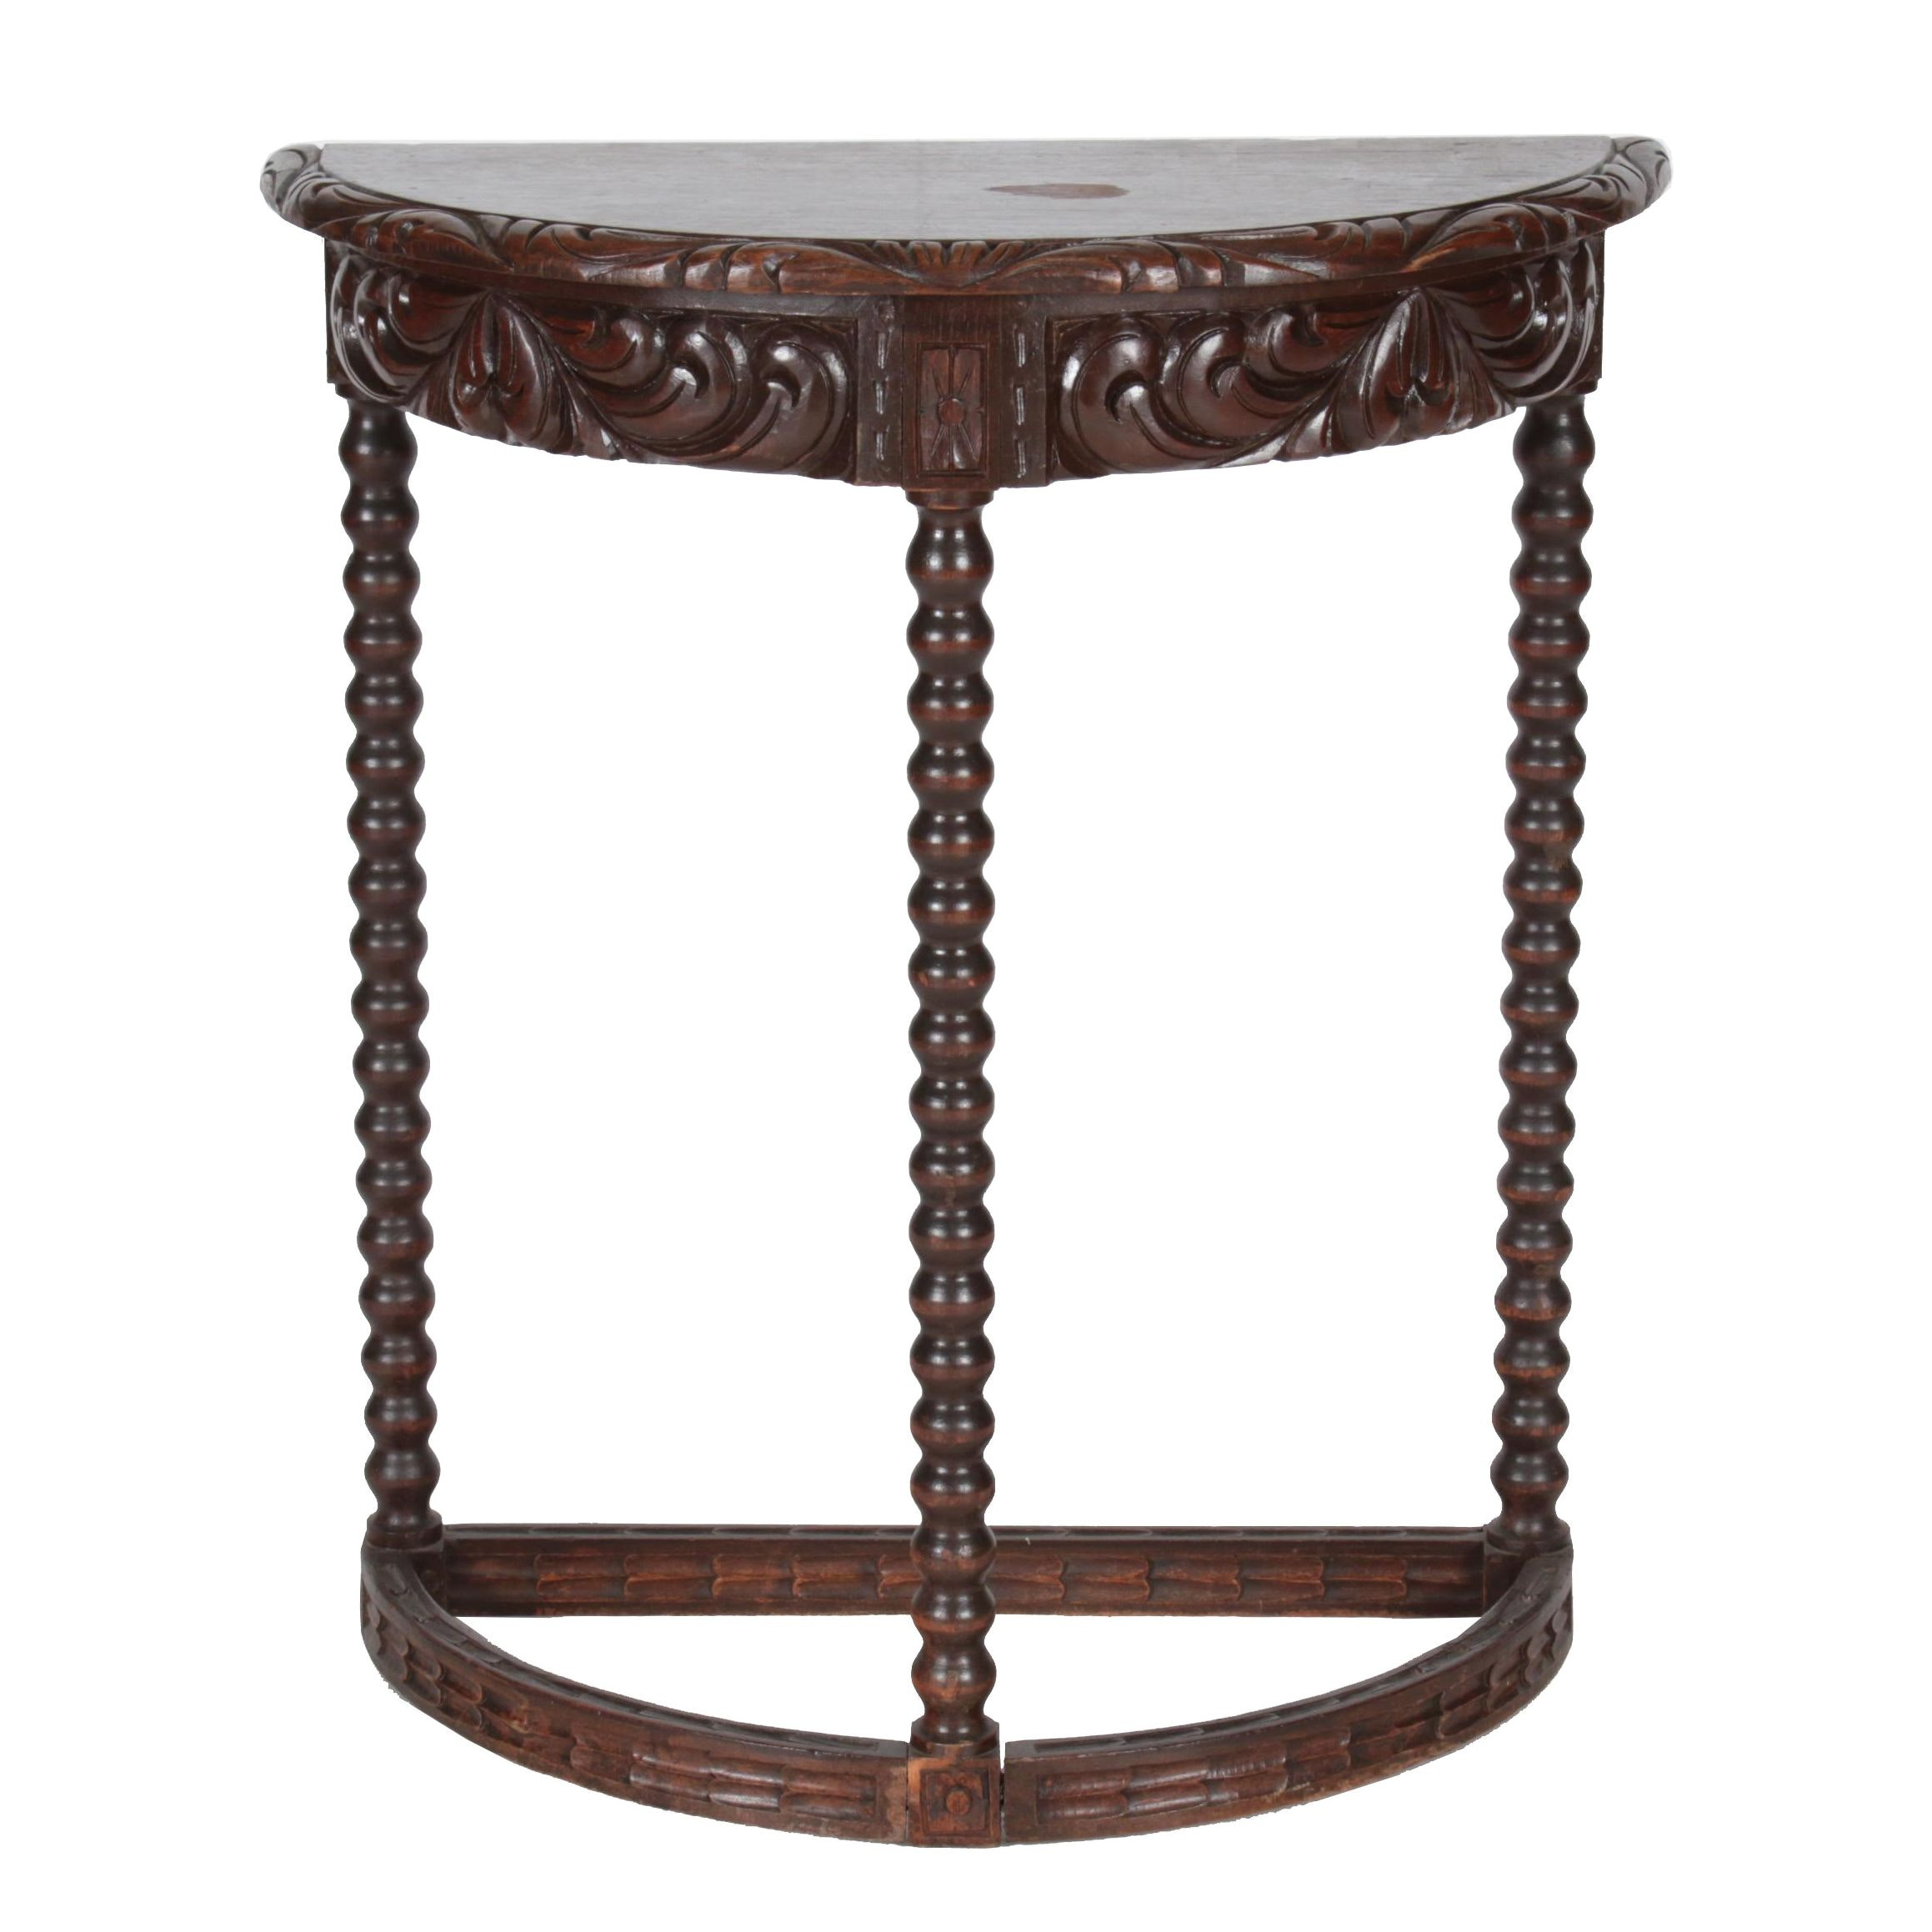 Early 20th Century Spanish Colonial Style Carved Oak Demilune Console Table